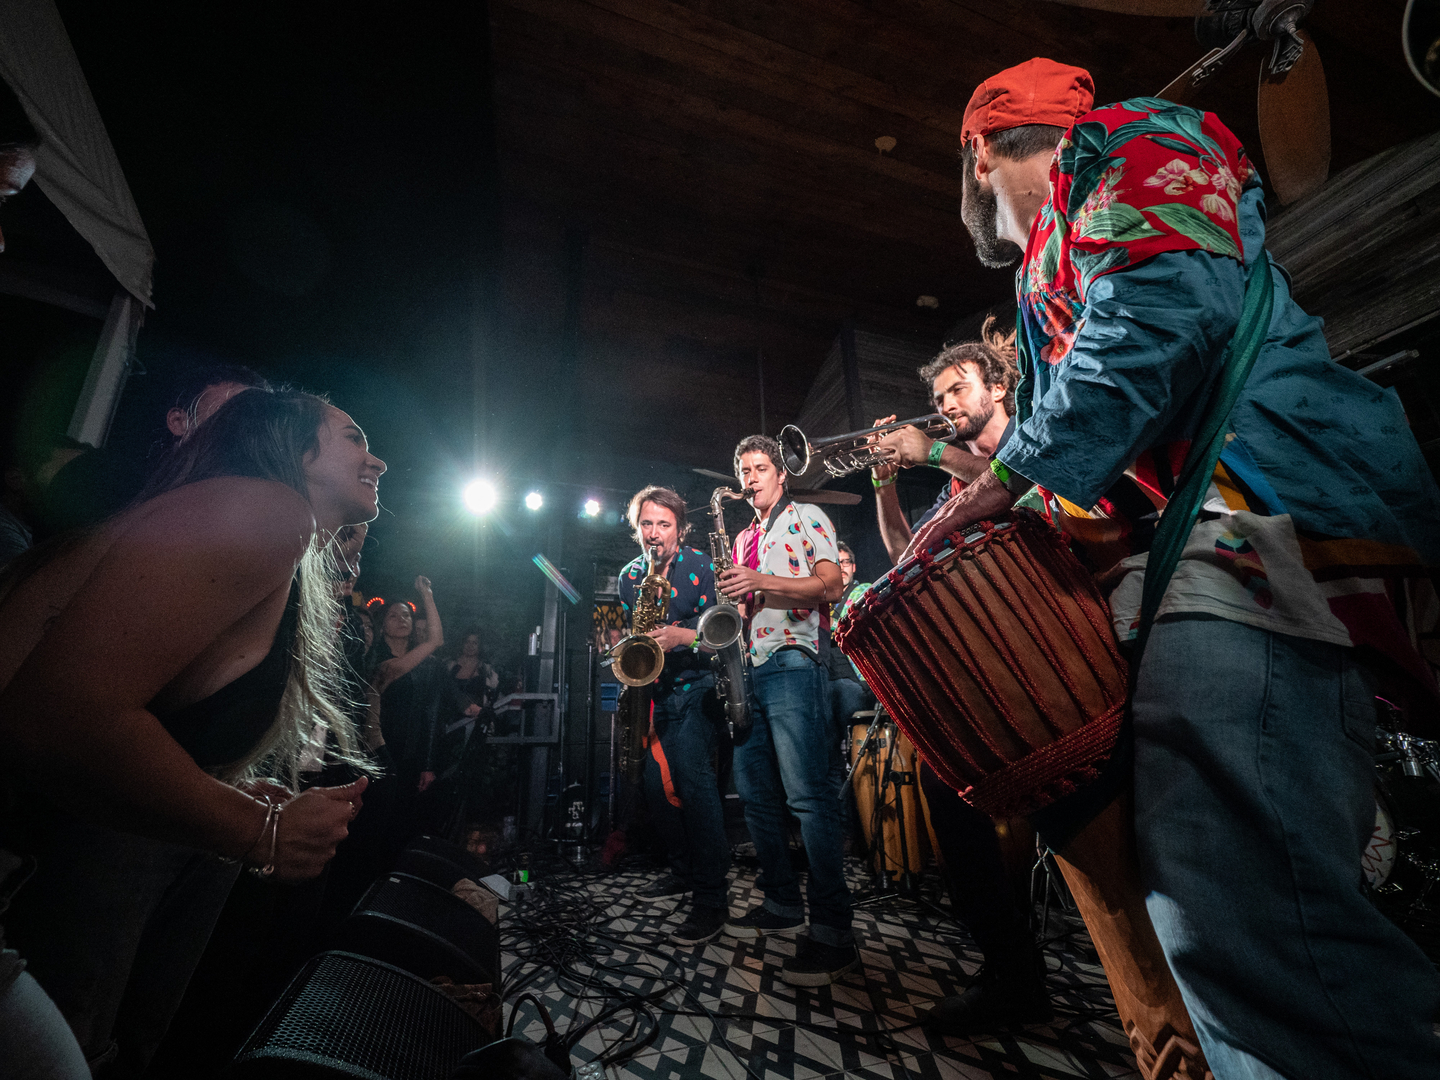 Bixiga 70 at Lucille, presented by Brasil Music Club – Photo by Caleb Pickens